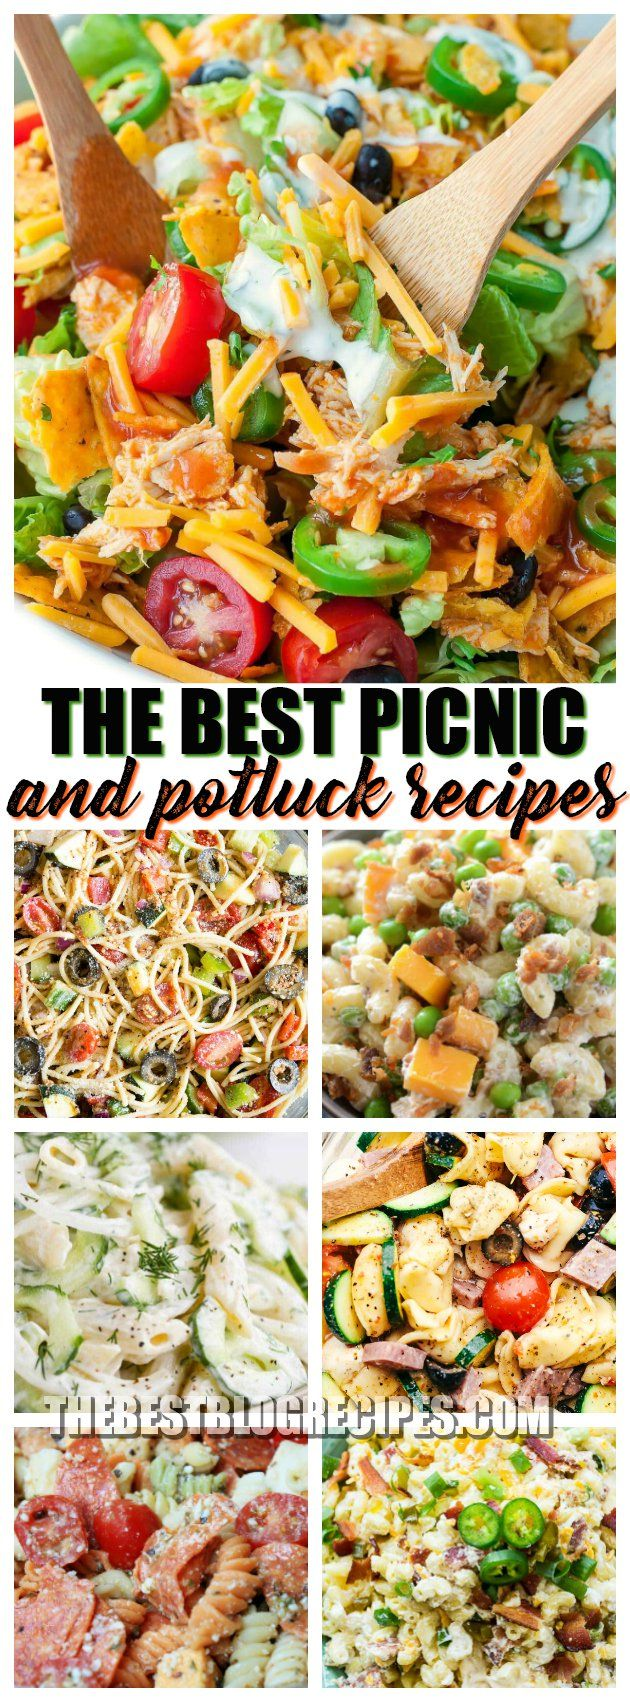 The Best Picnic and Potluck Recipes are made using quick and easy ingredients. They are budget friendly and make the perfect side dishes for all of your picnics, potlucks, and church gatherings! via @bestblogrecipes